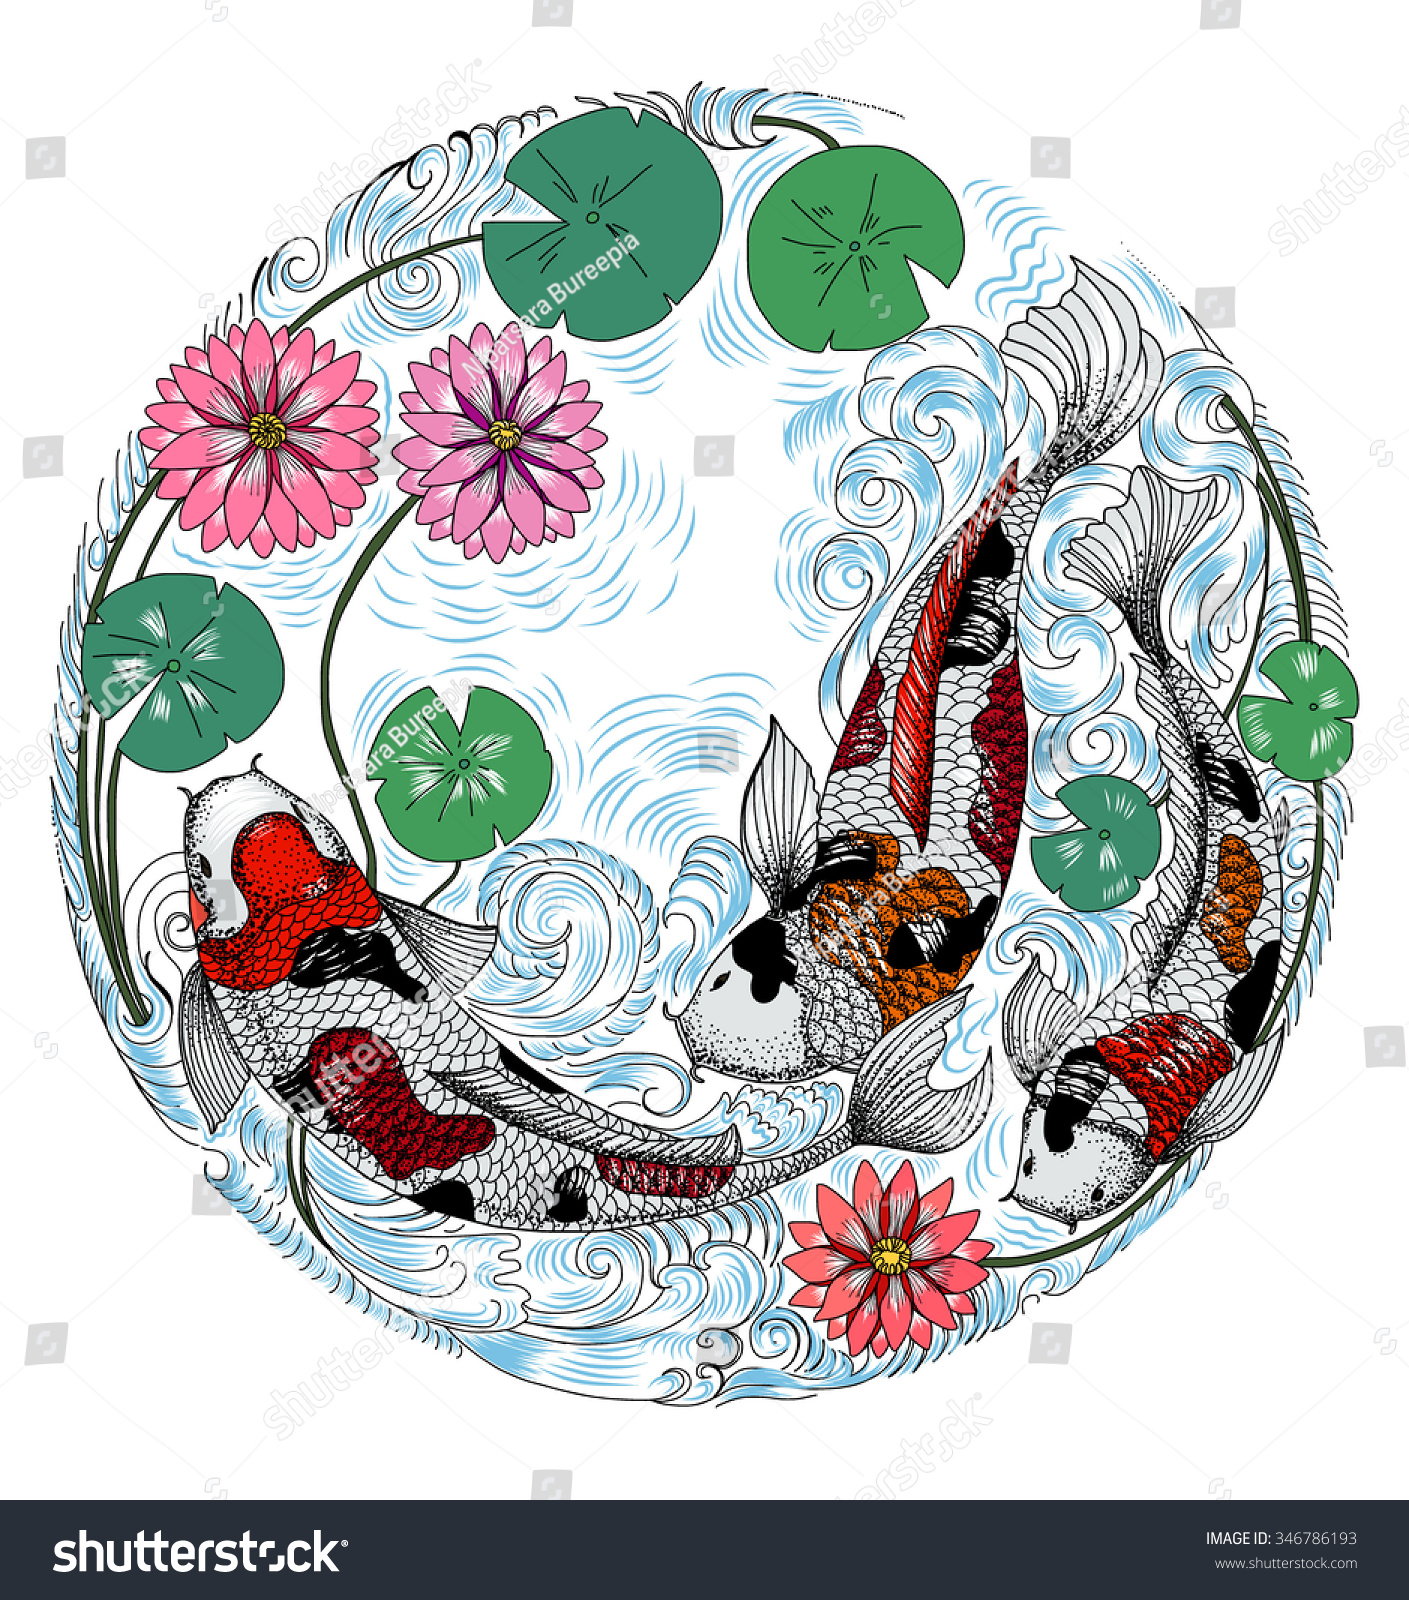 Hand drawn koi fish circle japanese stock vector 346786193 for Japanese koi fish drawing